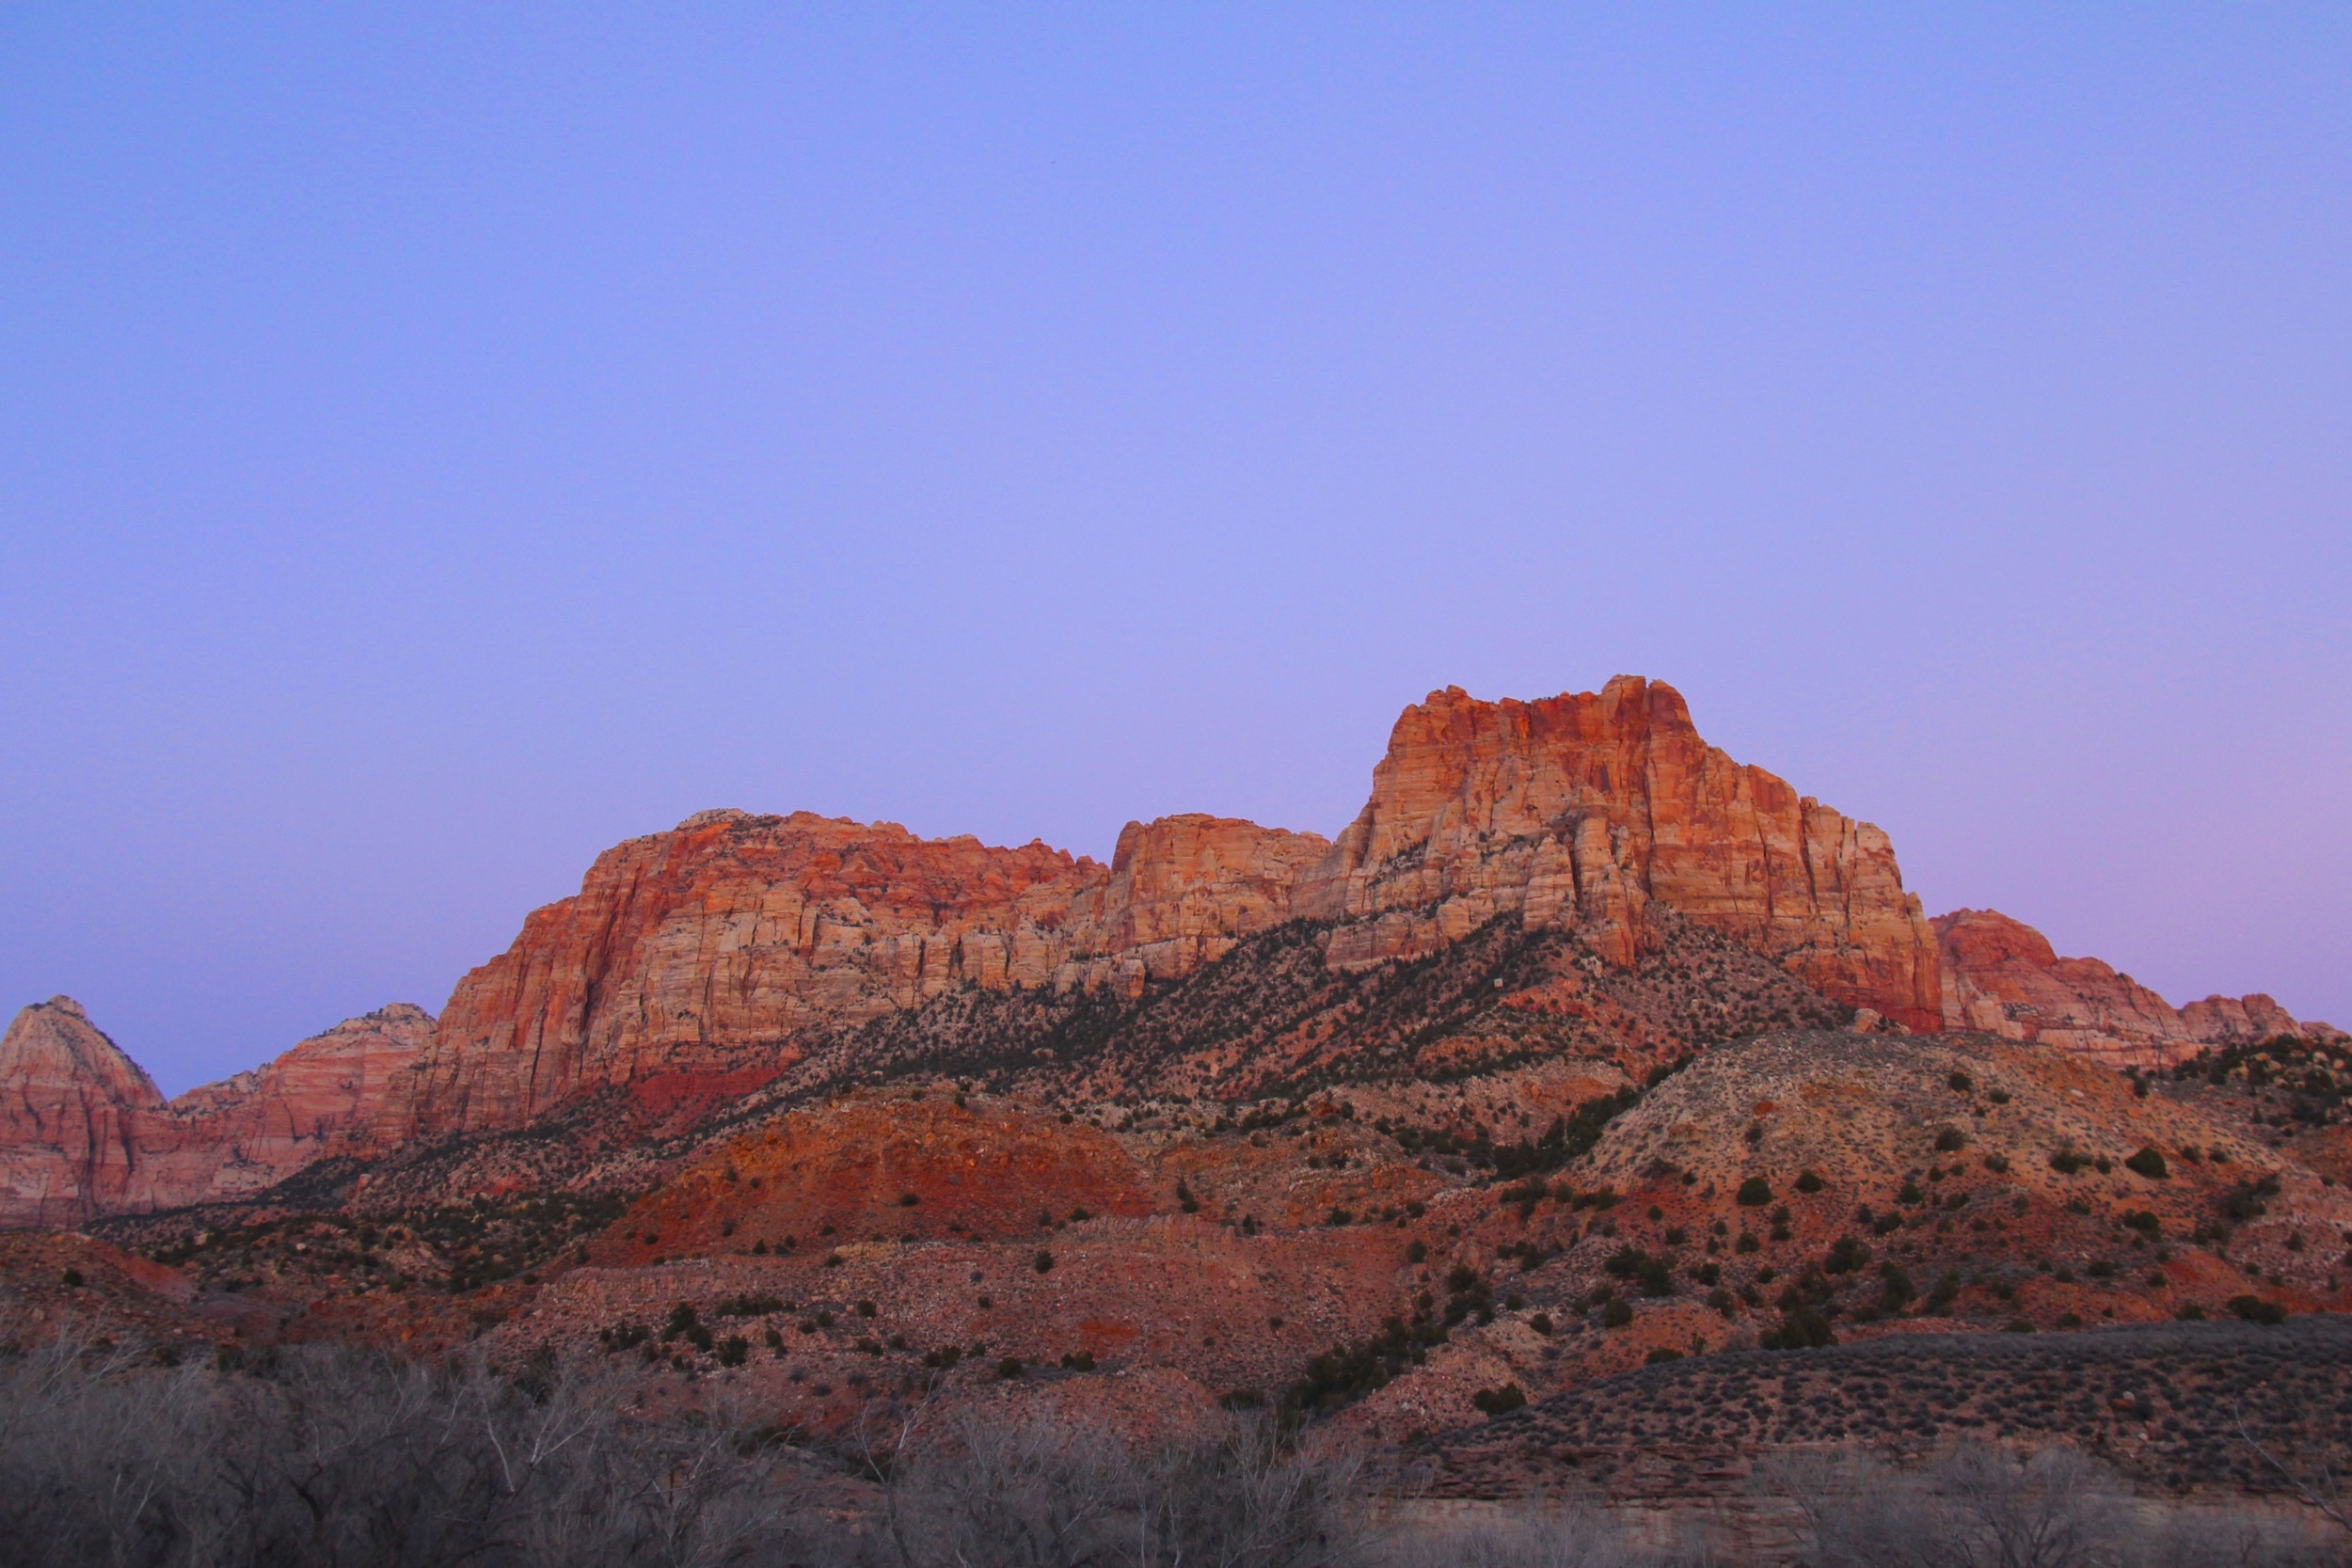 Dusk turns Zion National Park into a purple-hued paradise. Talk about mood lighting.